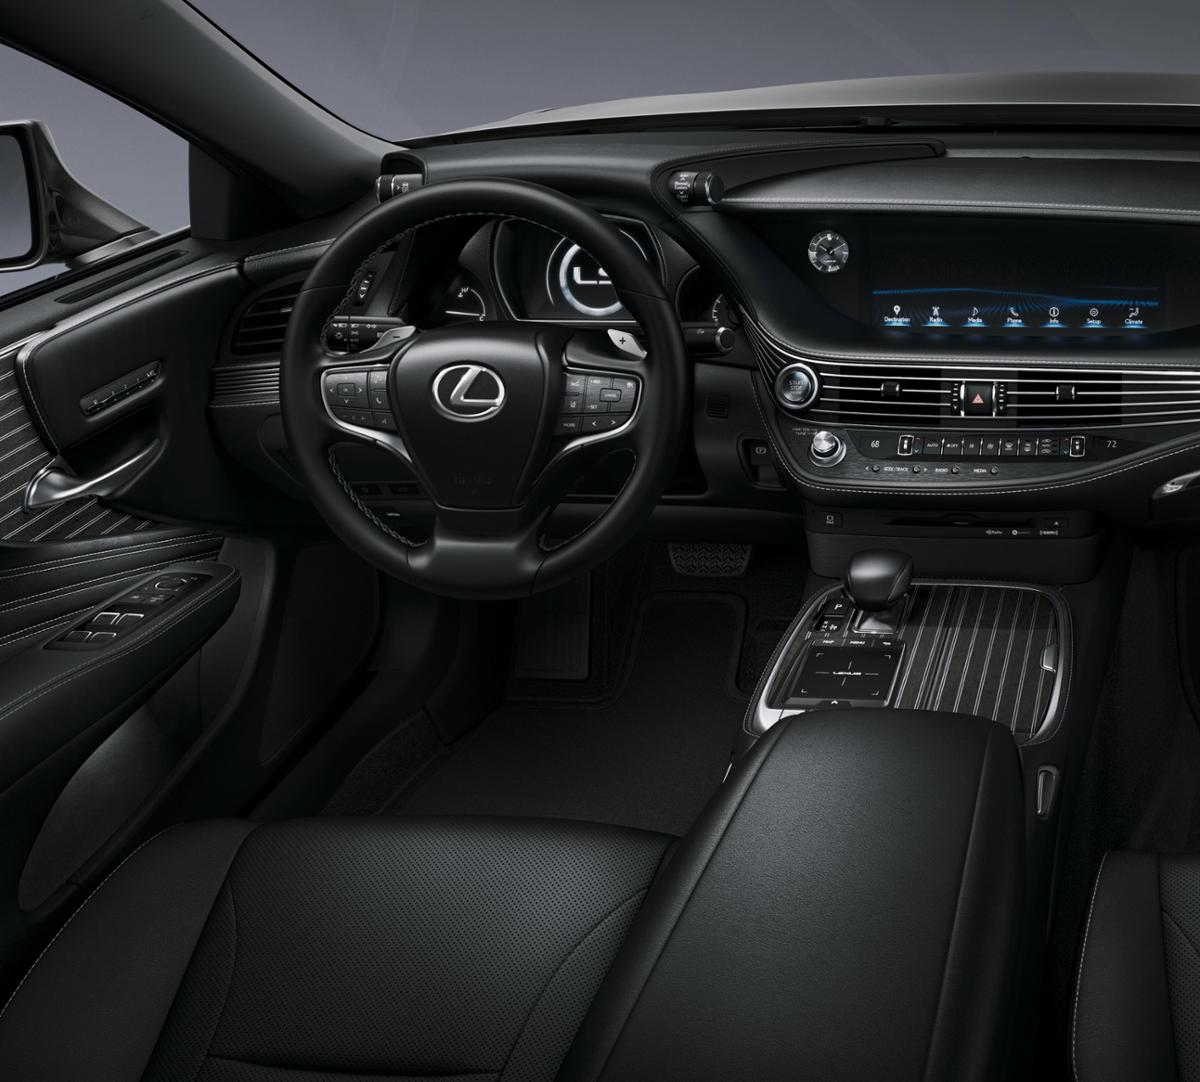 2019 Lexus Is Interior: New 2019 Lexus LS 500 For Sale In Farmingdale, NY